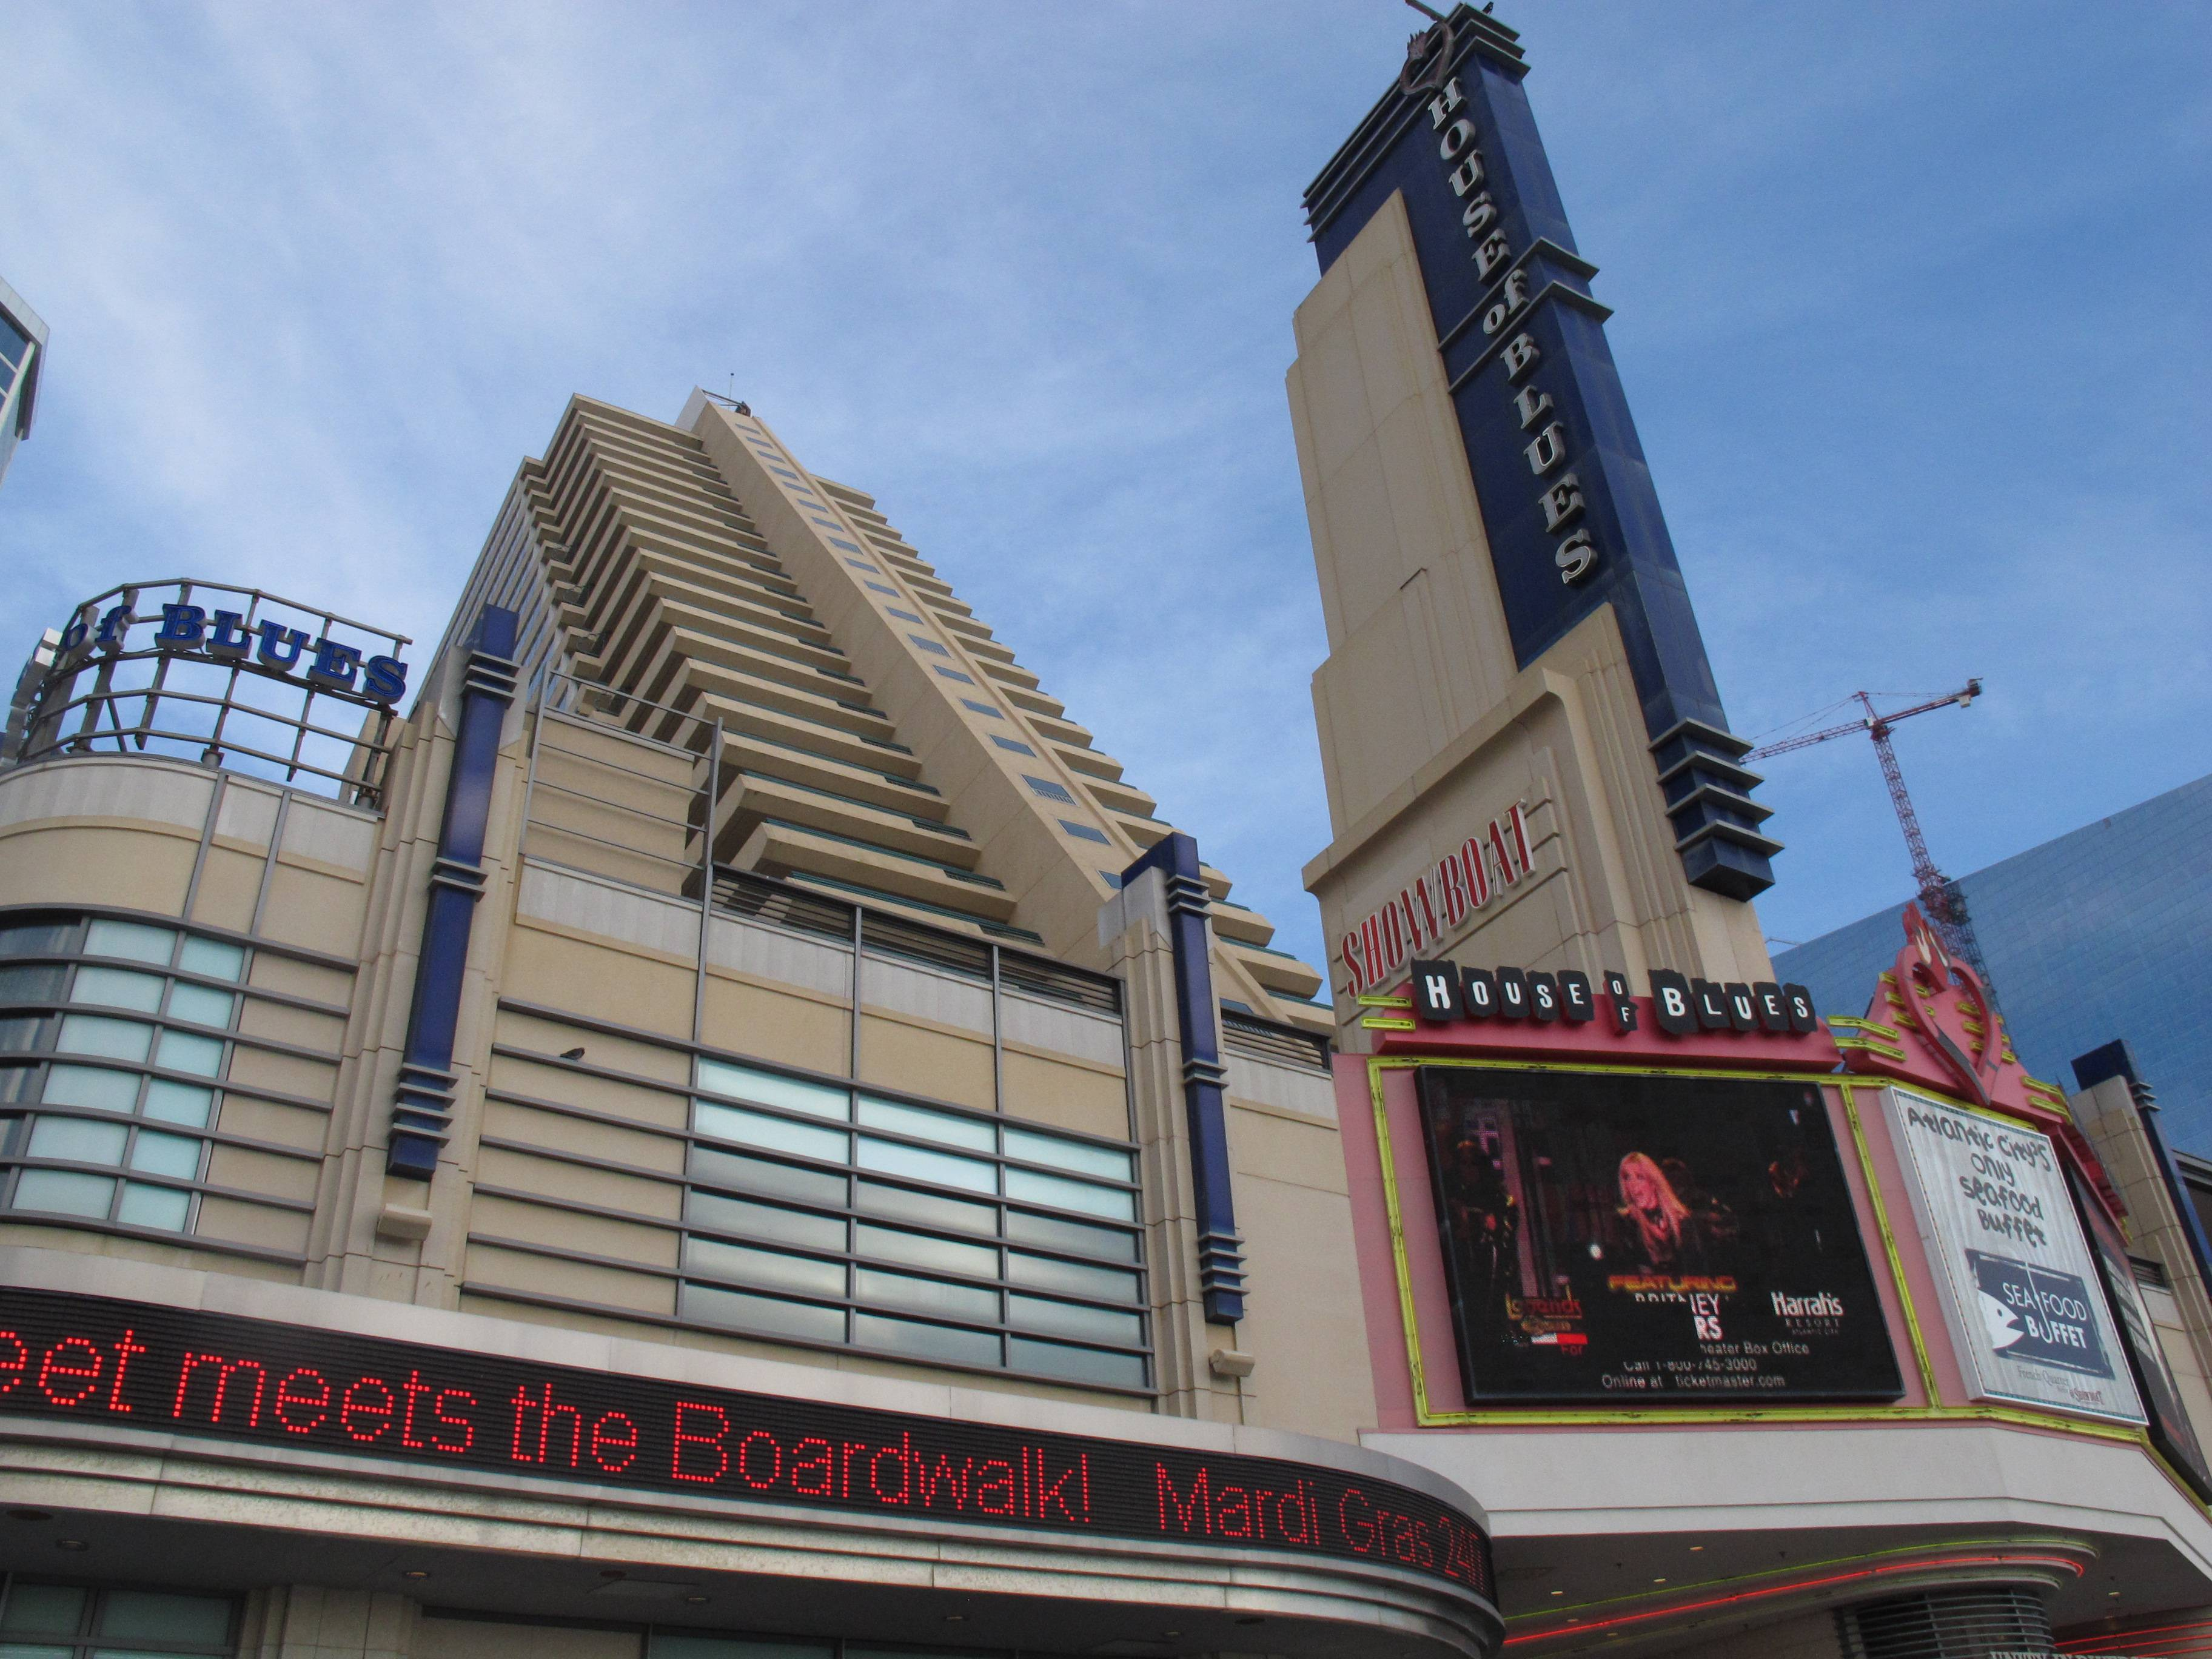 The Showboat Casino Hotel announced it would shut down Aug. 31. It will be the second Atlantic City to close this year, along with The Atlantic Club, and a third may shut down as well if Revel Casino Hotel can't find a buyer in bankruptcy court. Atlantic City started the year with 12 casinos. By Labor Day, it could be down to nine.